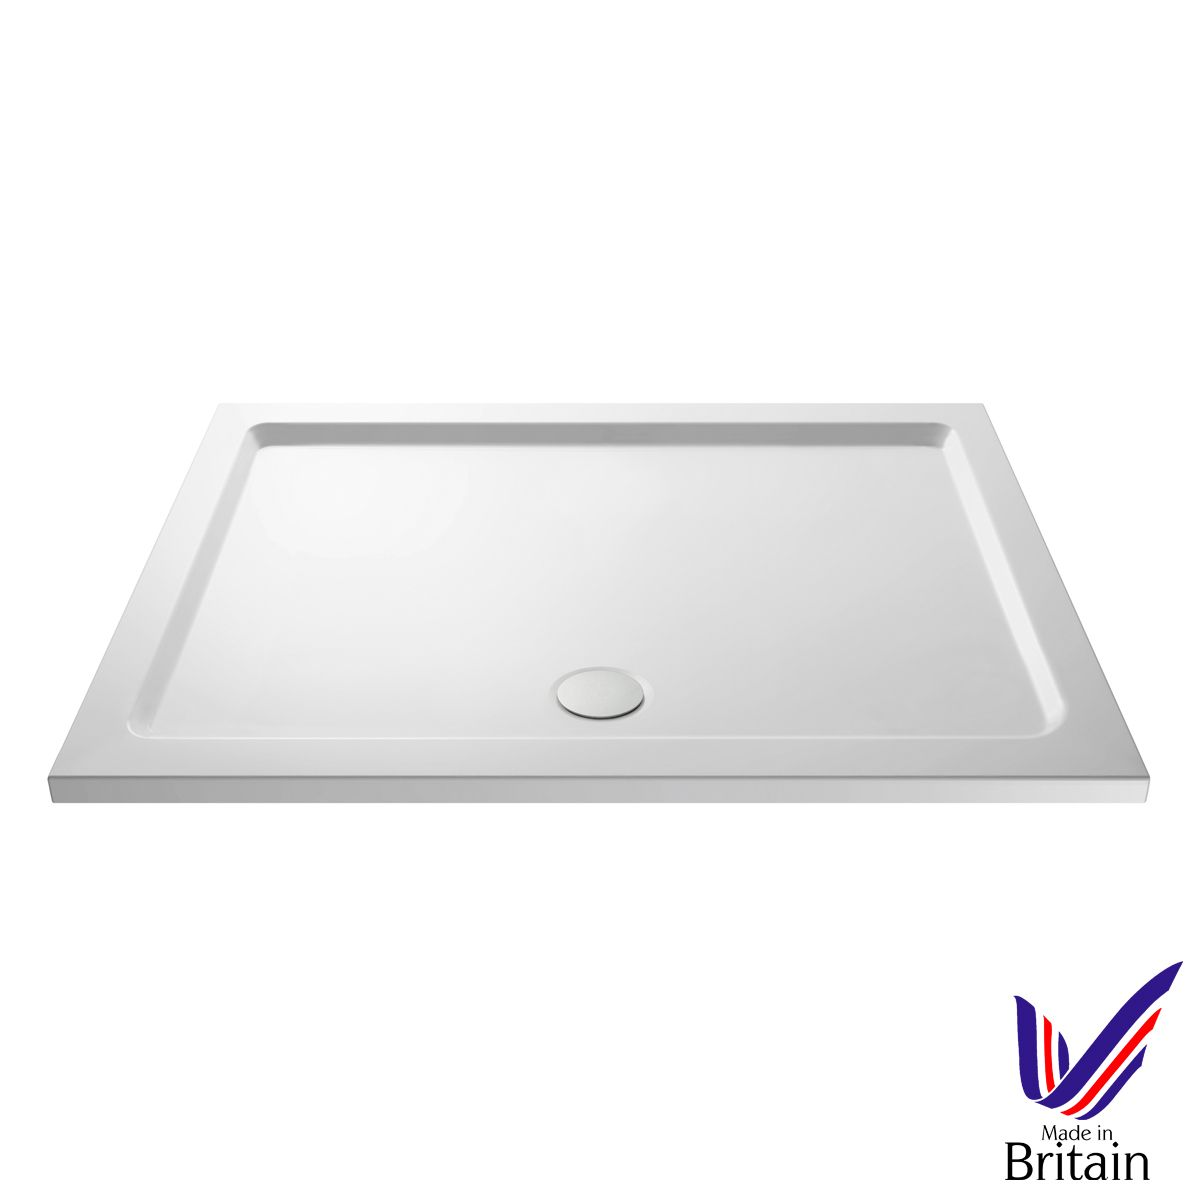 1600 x 760 Shower Tray Rectangular Low Profile by Pearlstone